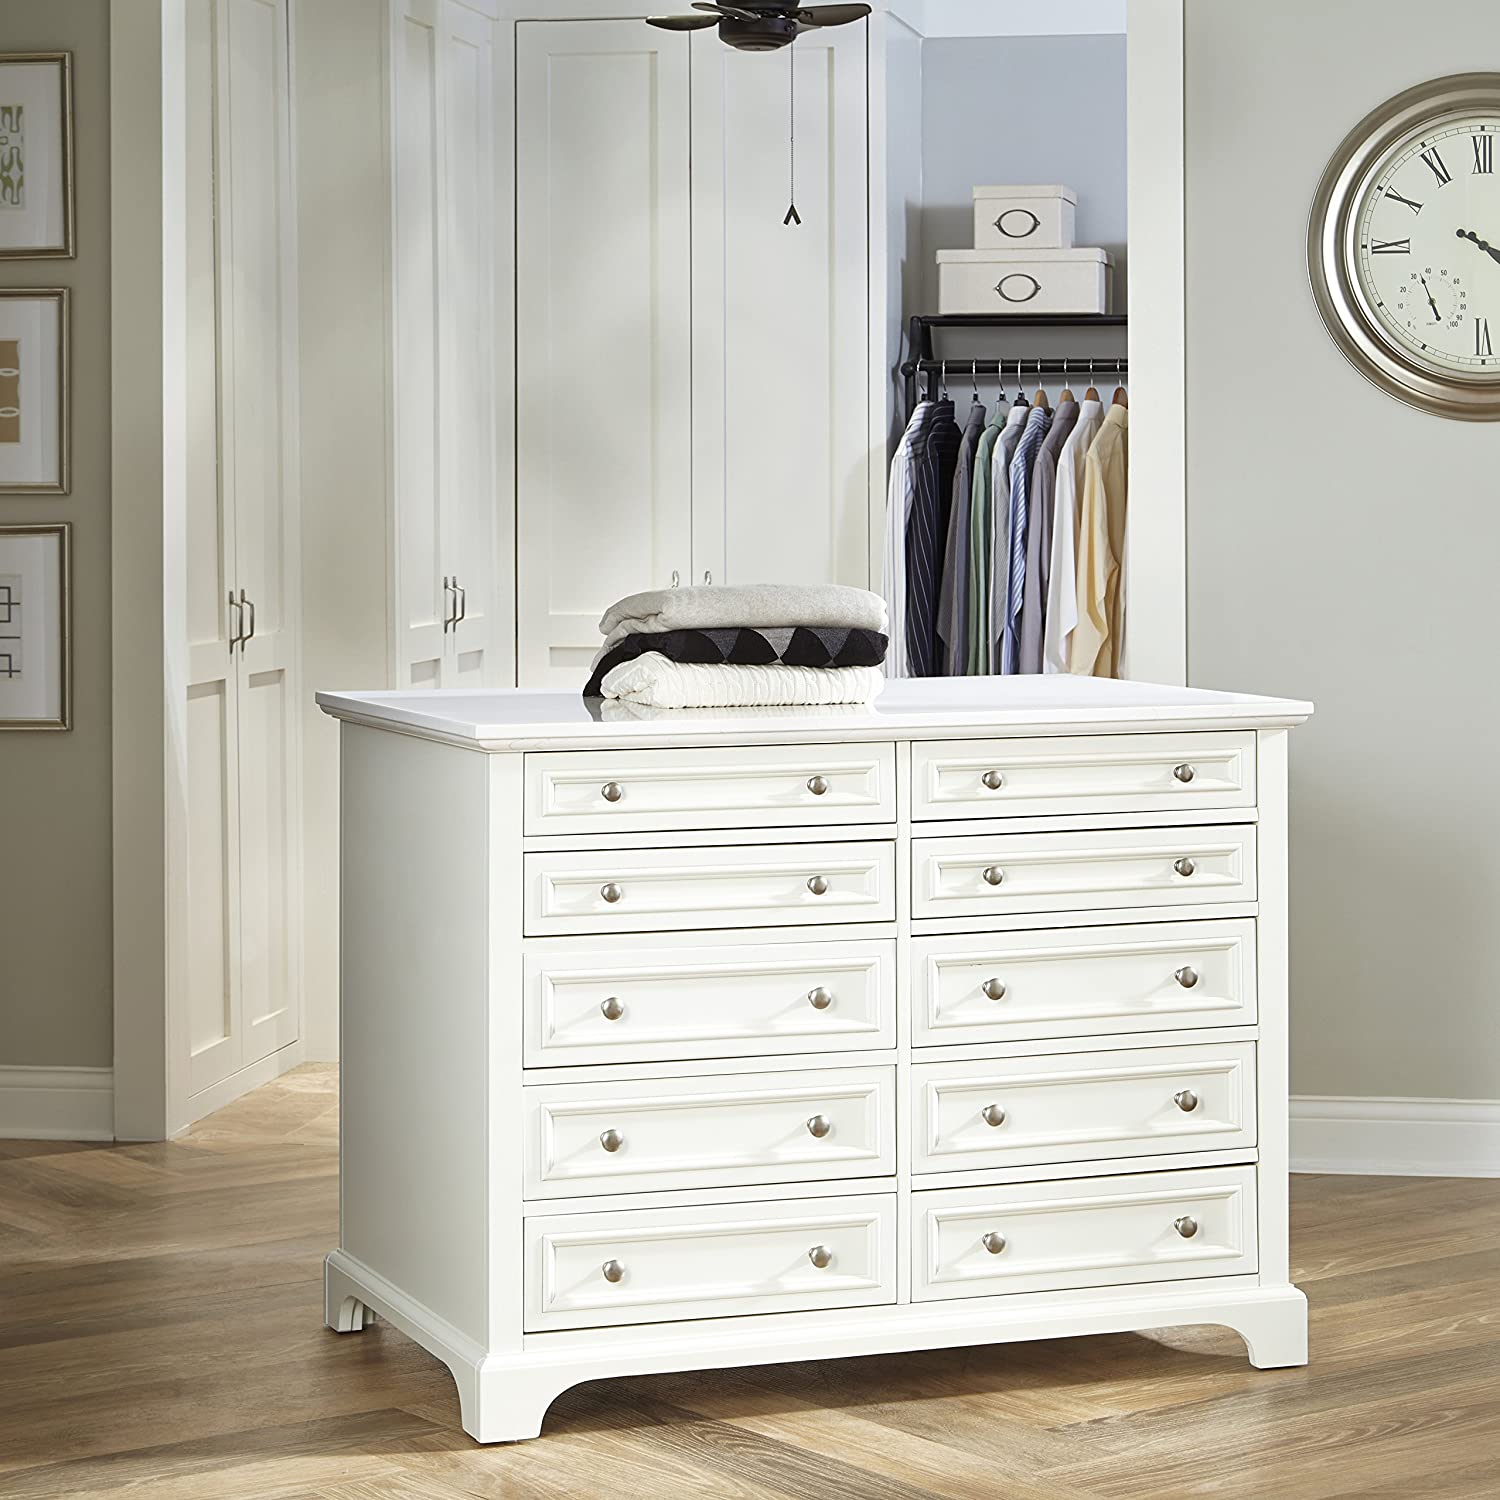 also dresser as sale full of small island white narrow ikea inside with well size closet for